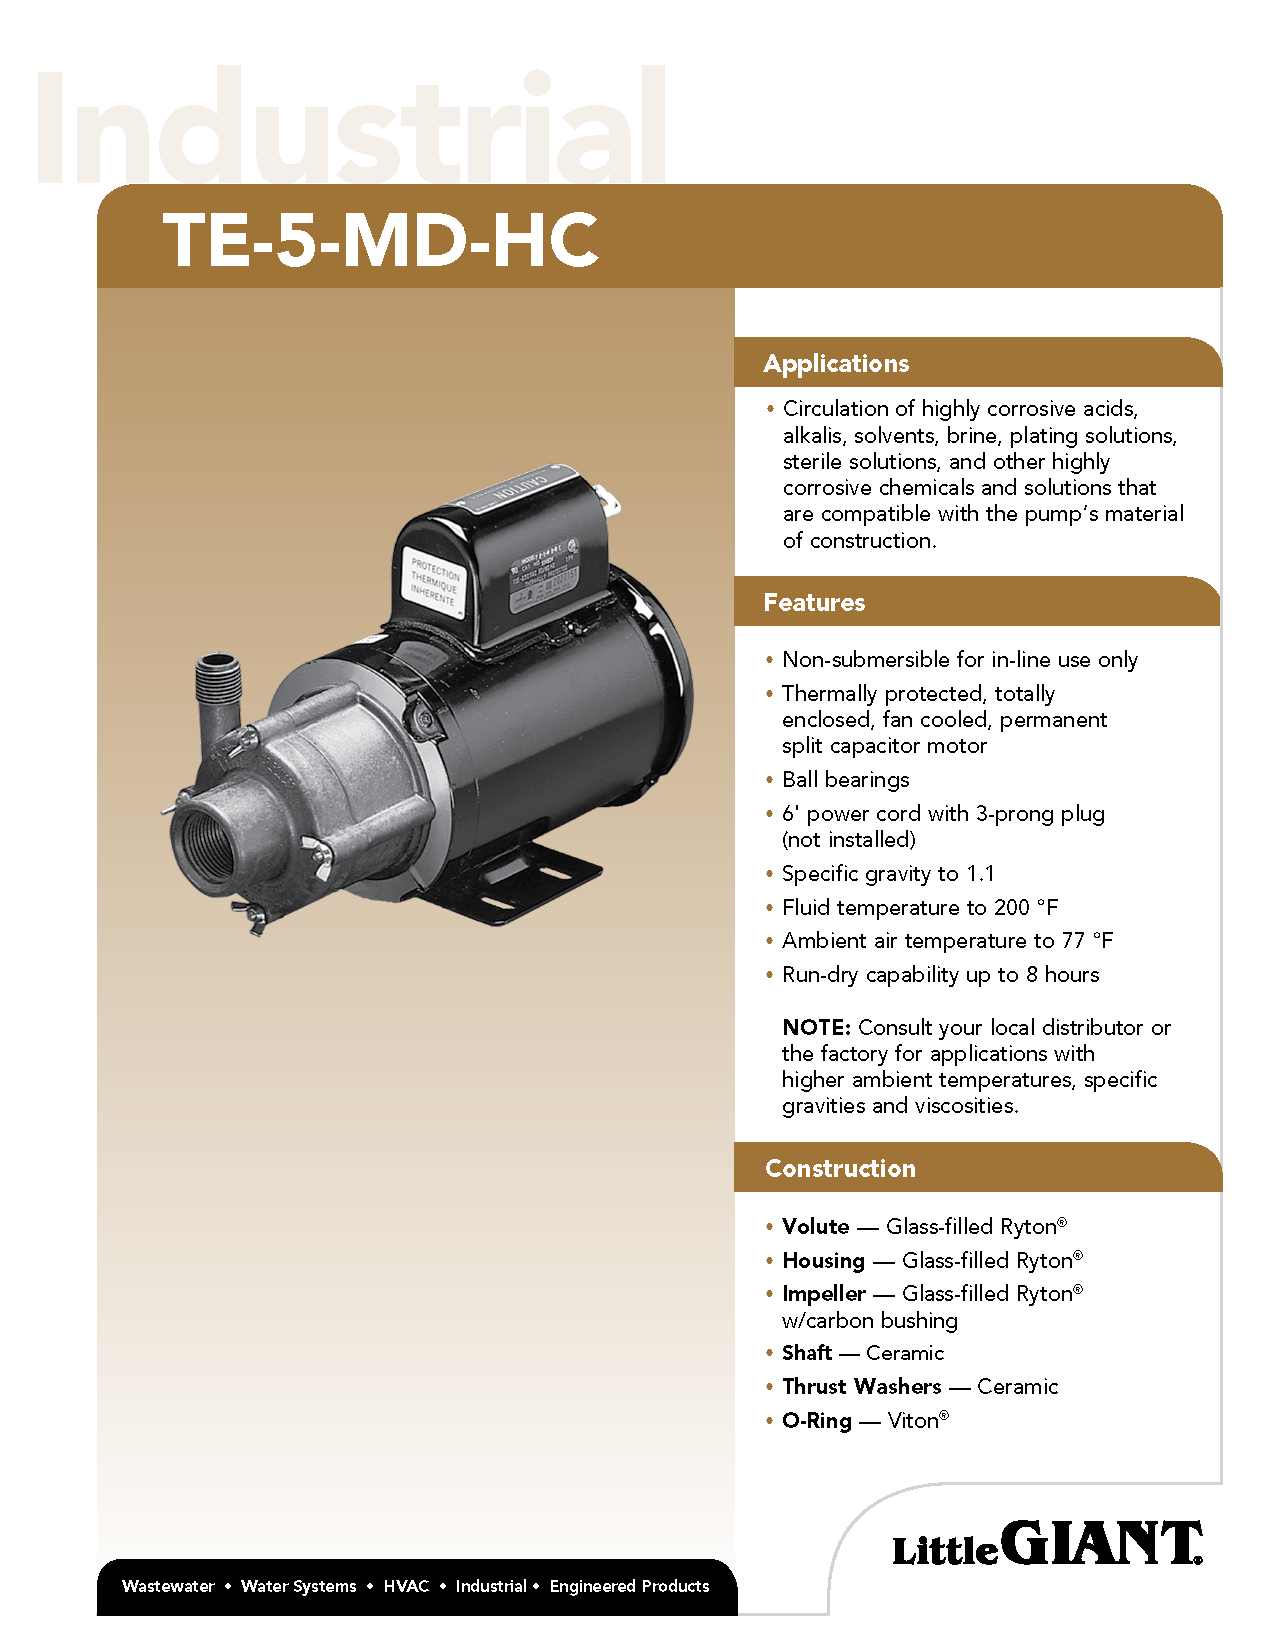 little giant technical specifications te 5 md hc process flow little giant technical specifications te 5 md hc